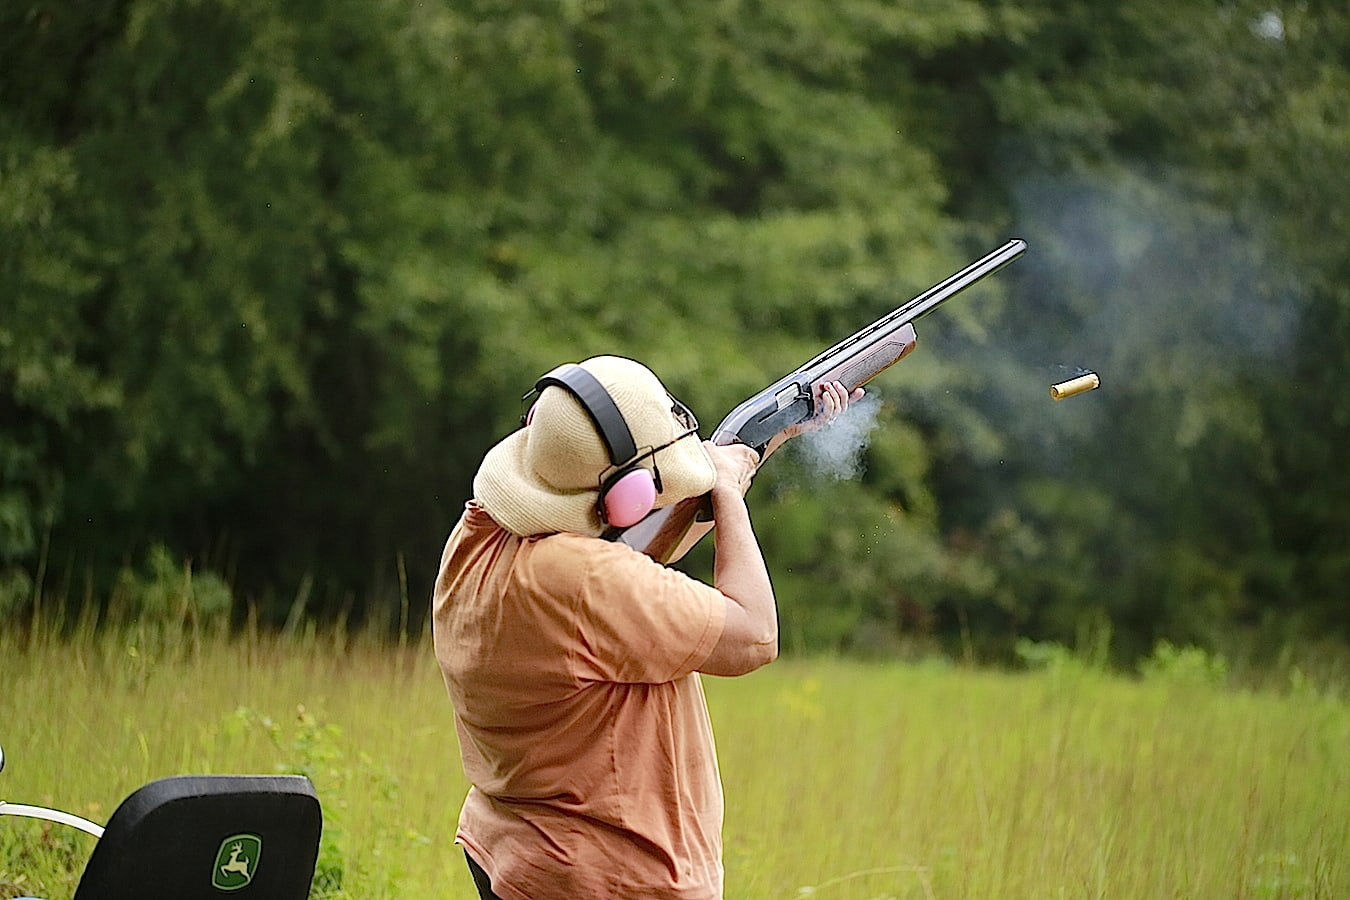 Even my mom got in on the skeet shooting action!